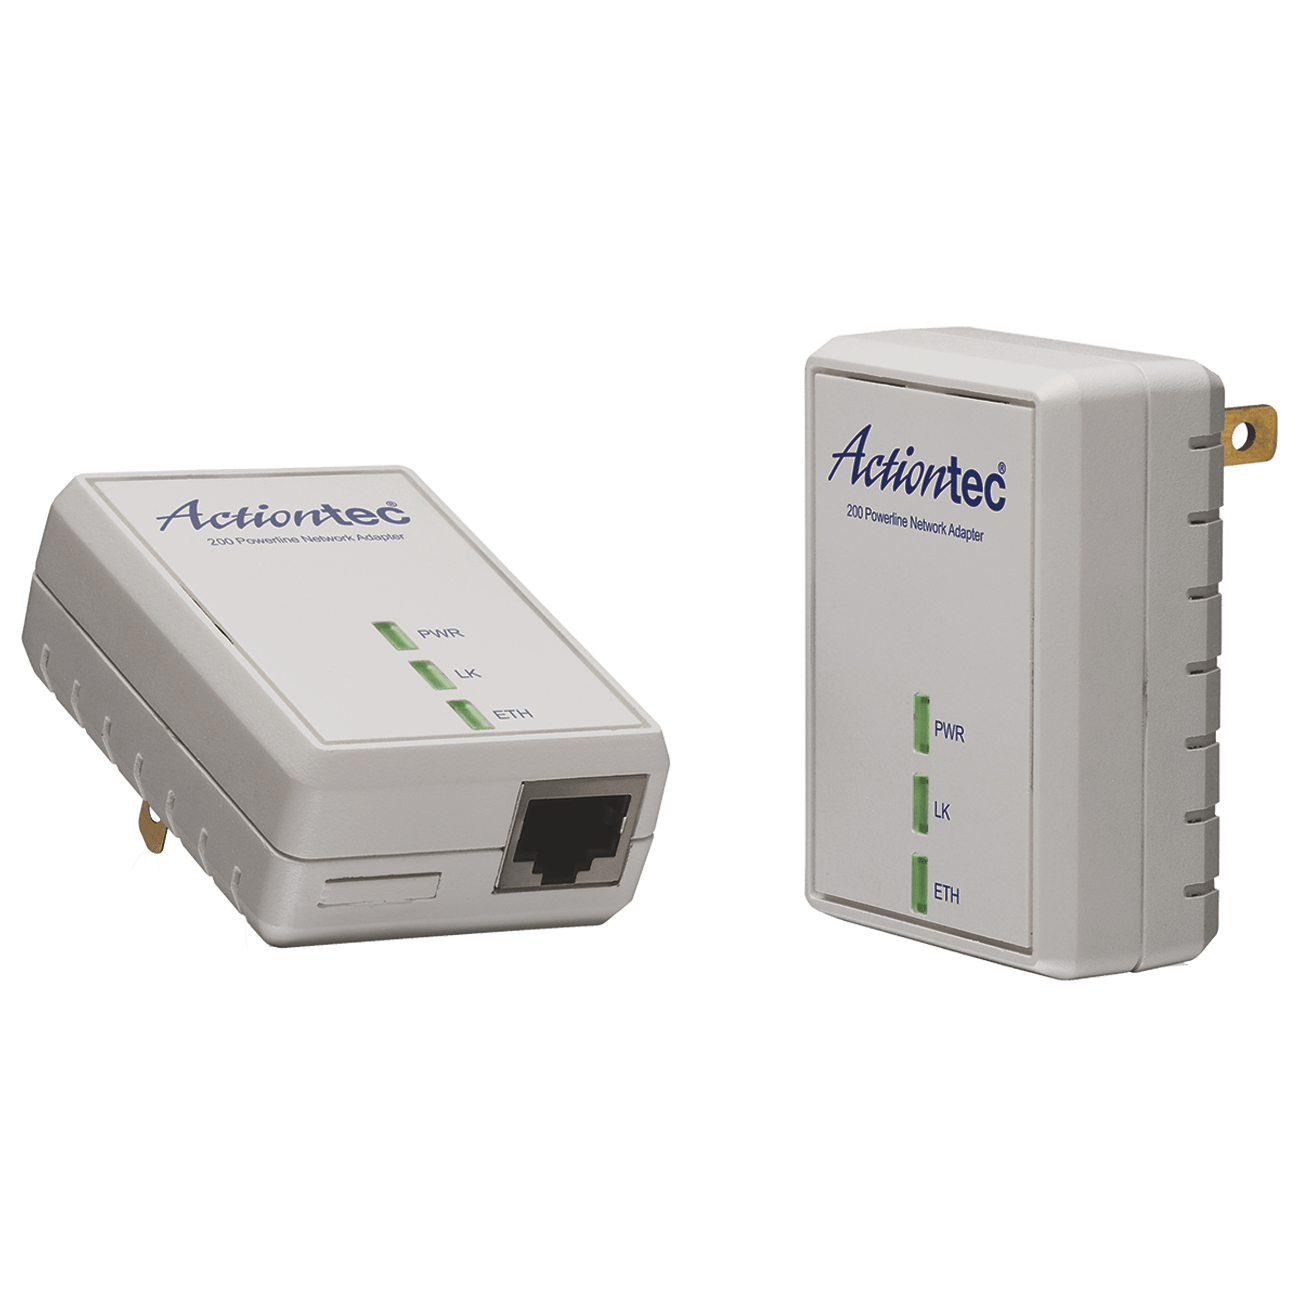 How To Fix Actiontec Router